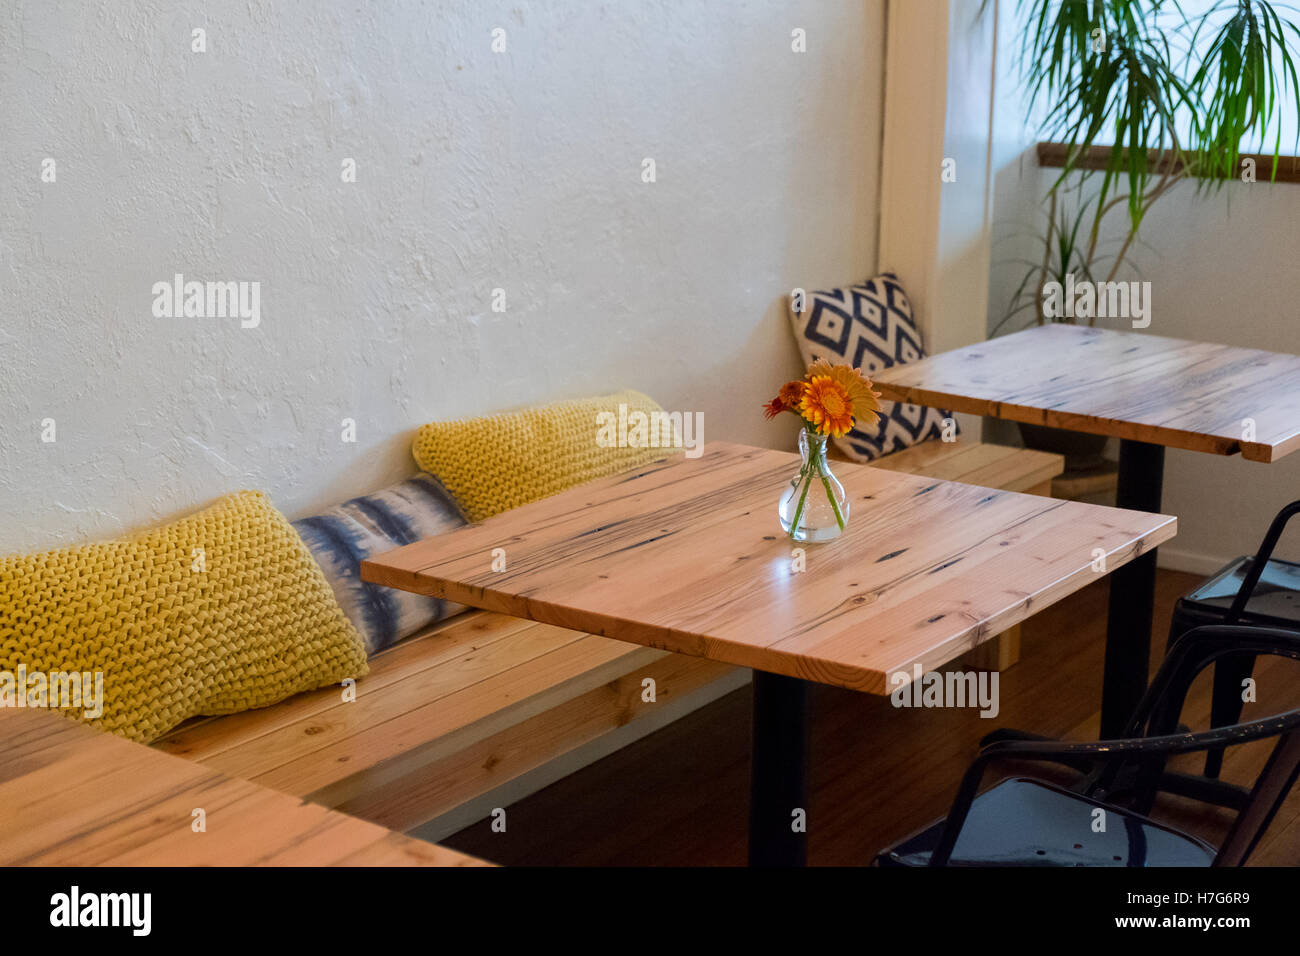 Bench seating at a coffee shop restaurant with small cafe  : bench seating at a coffee shop restaurant with small cafe tables and H7G6R9 from www.alamy.com size 1300 x 956 jpeg 157kB